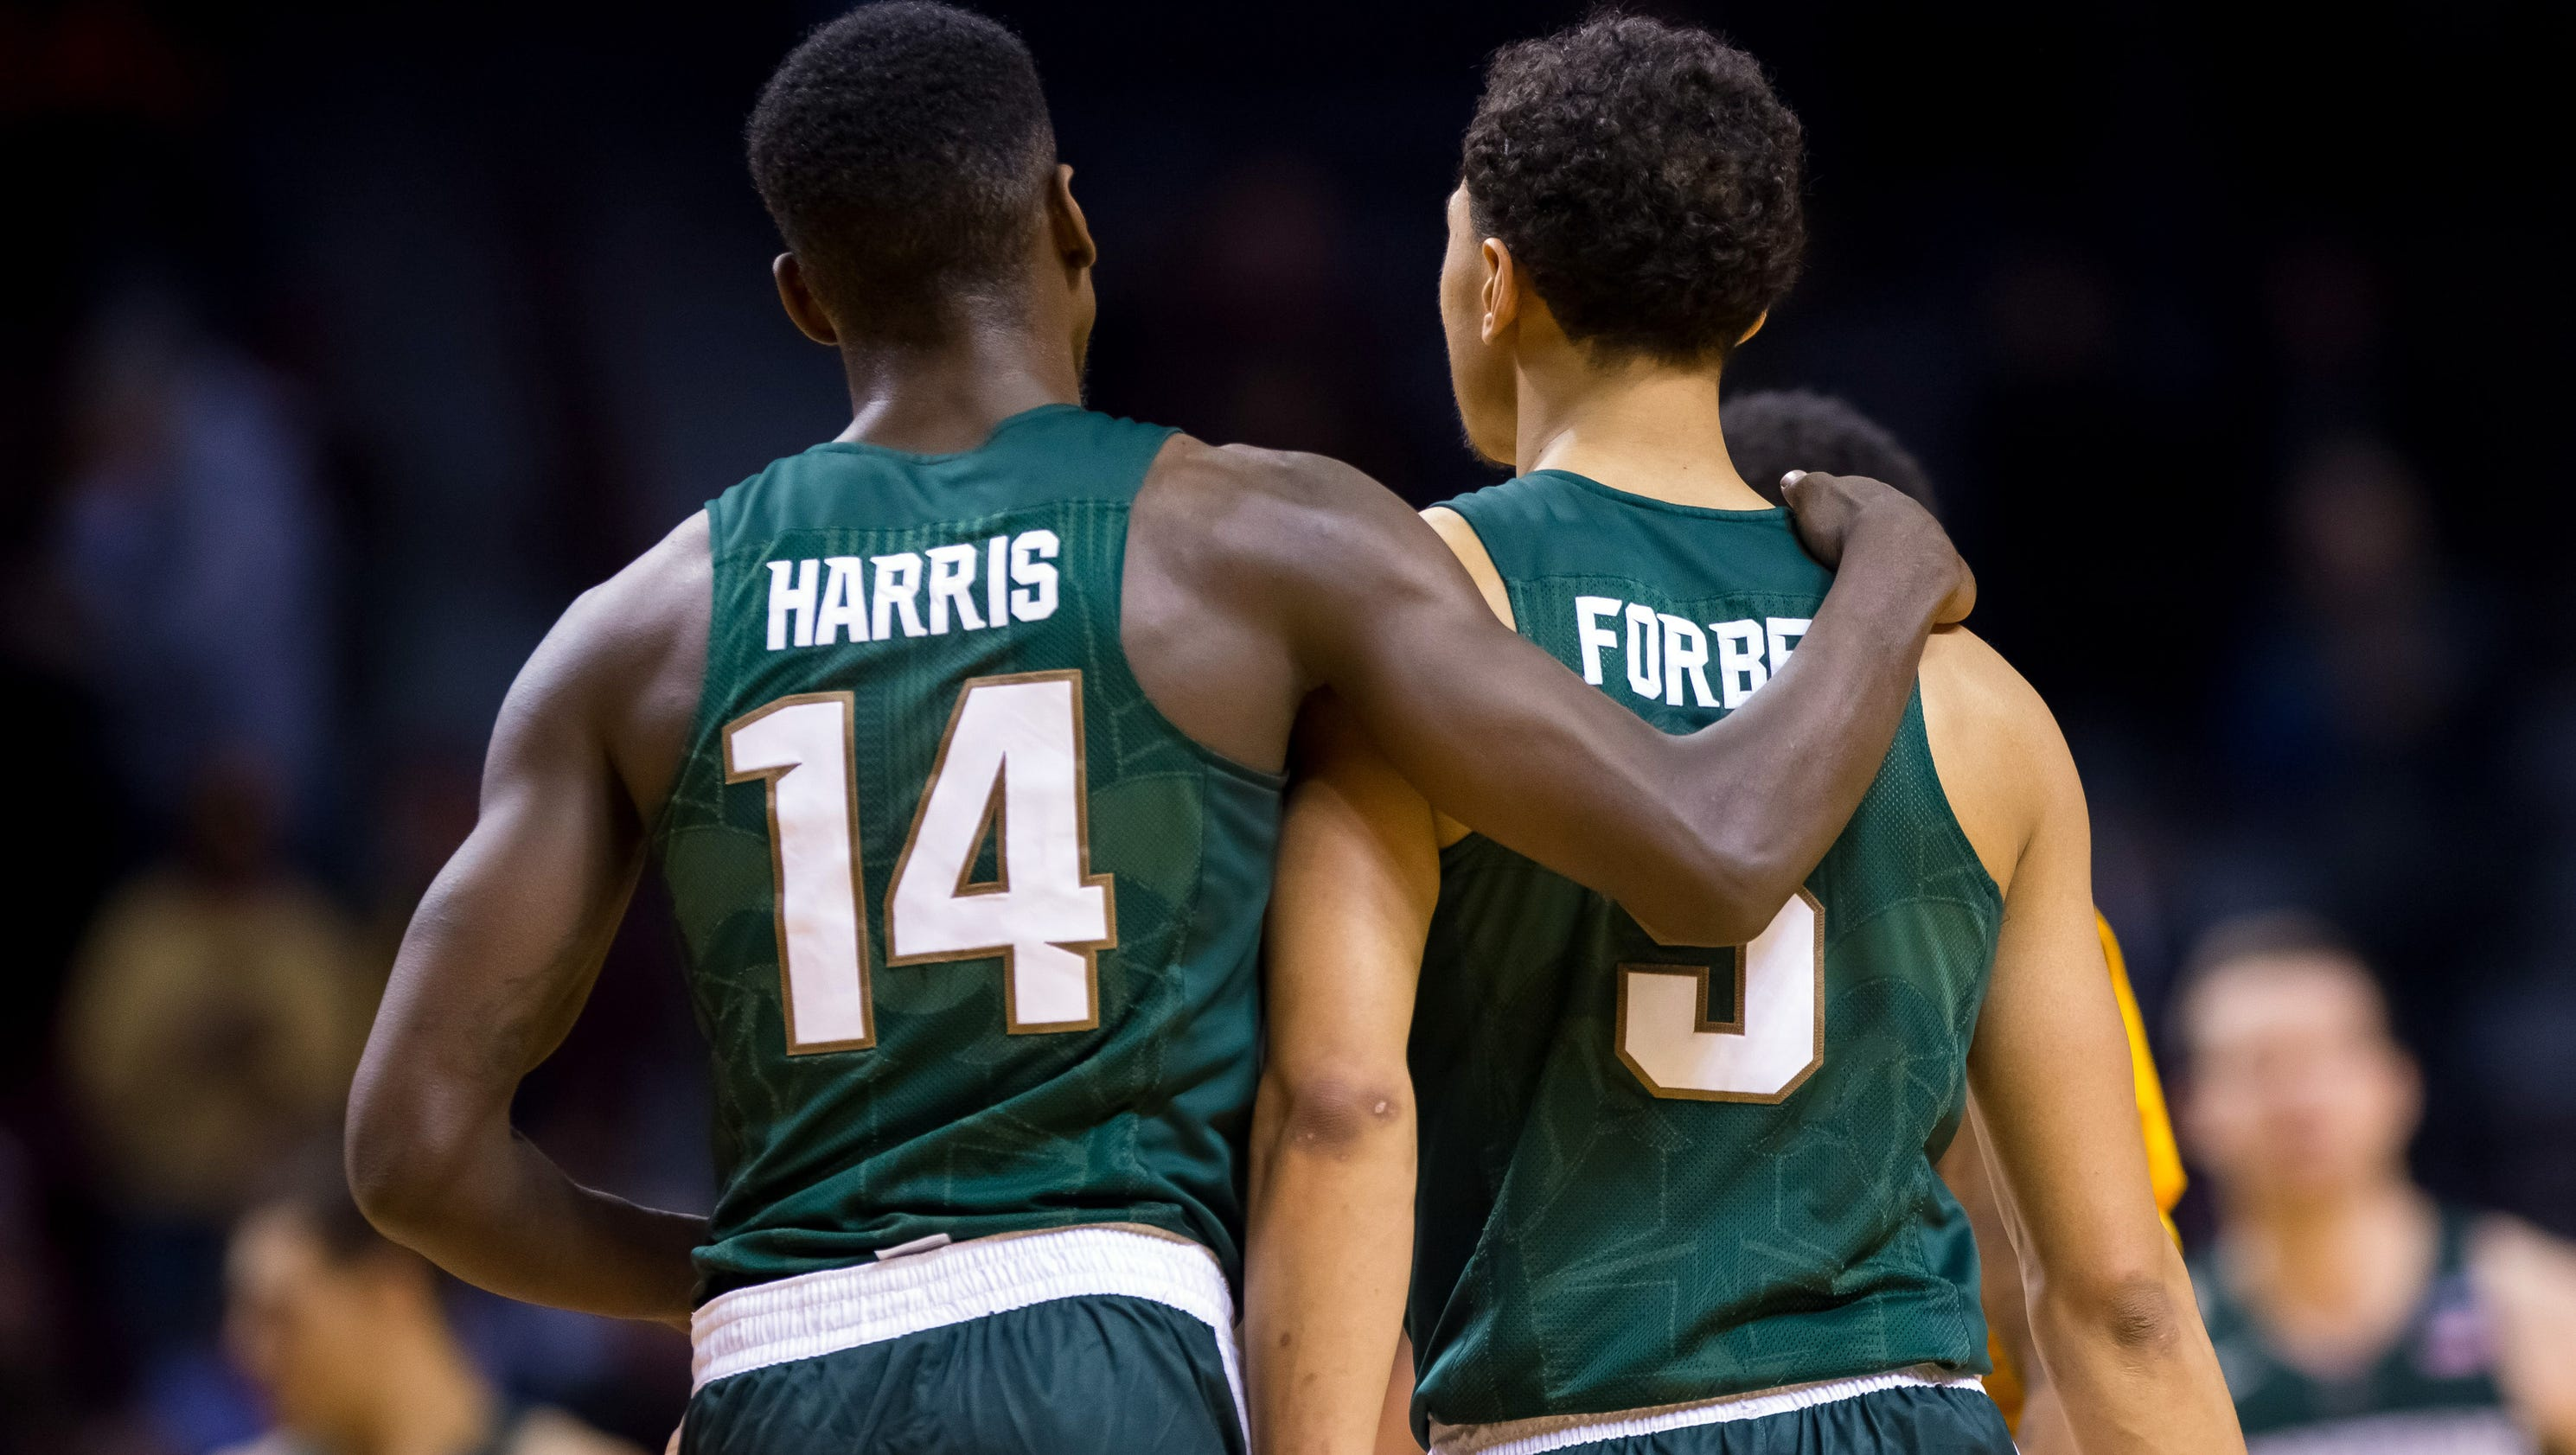 MSU hoops falls from No. 1 to No. 5 in AP poll